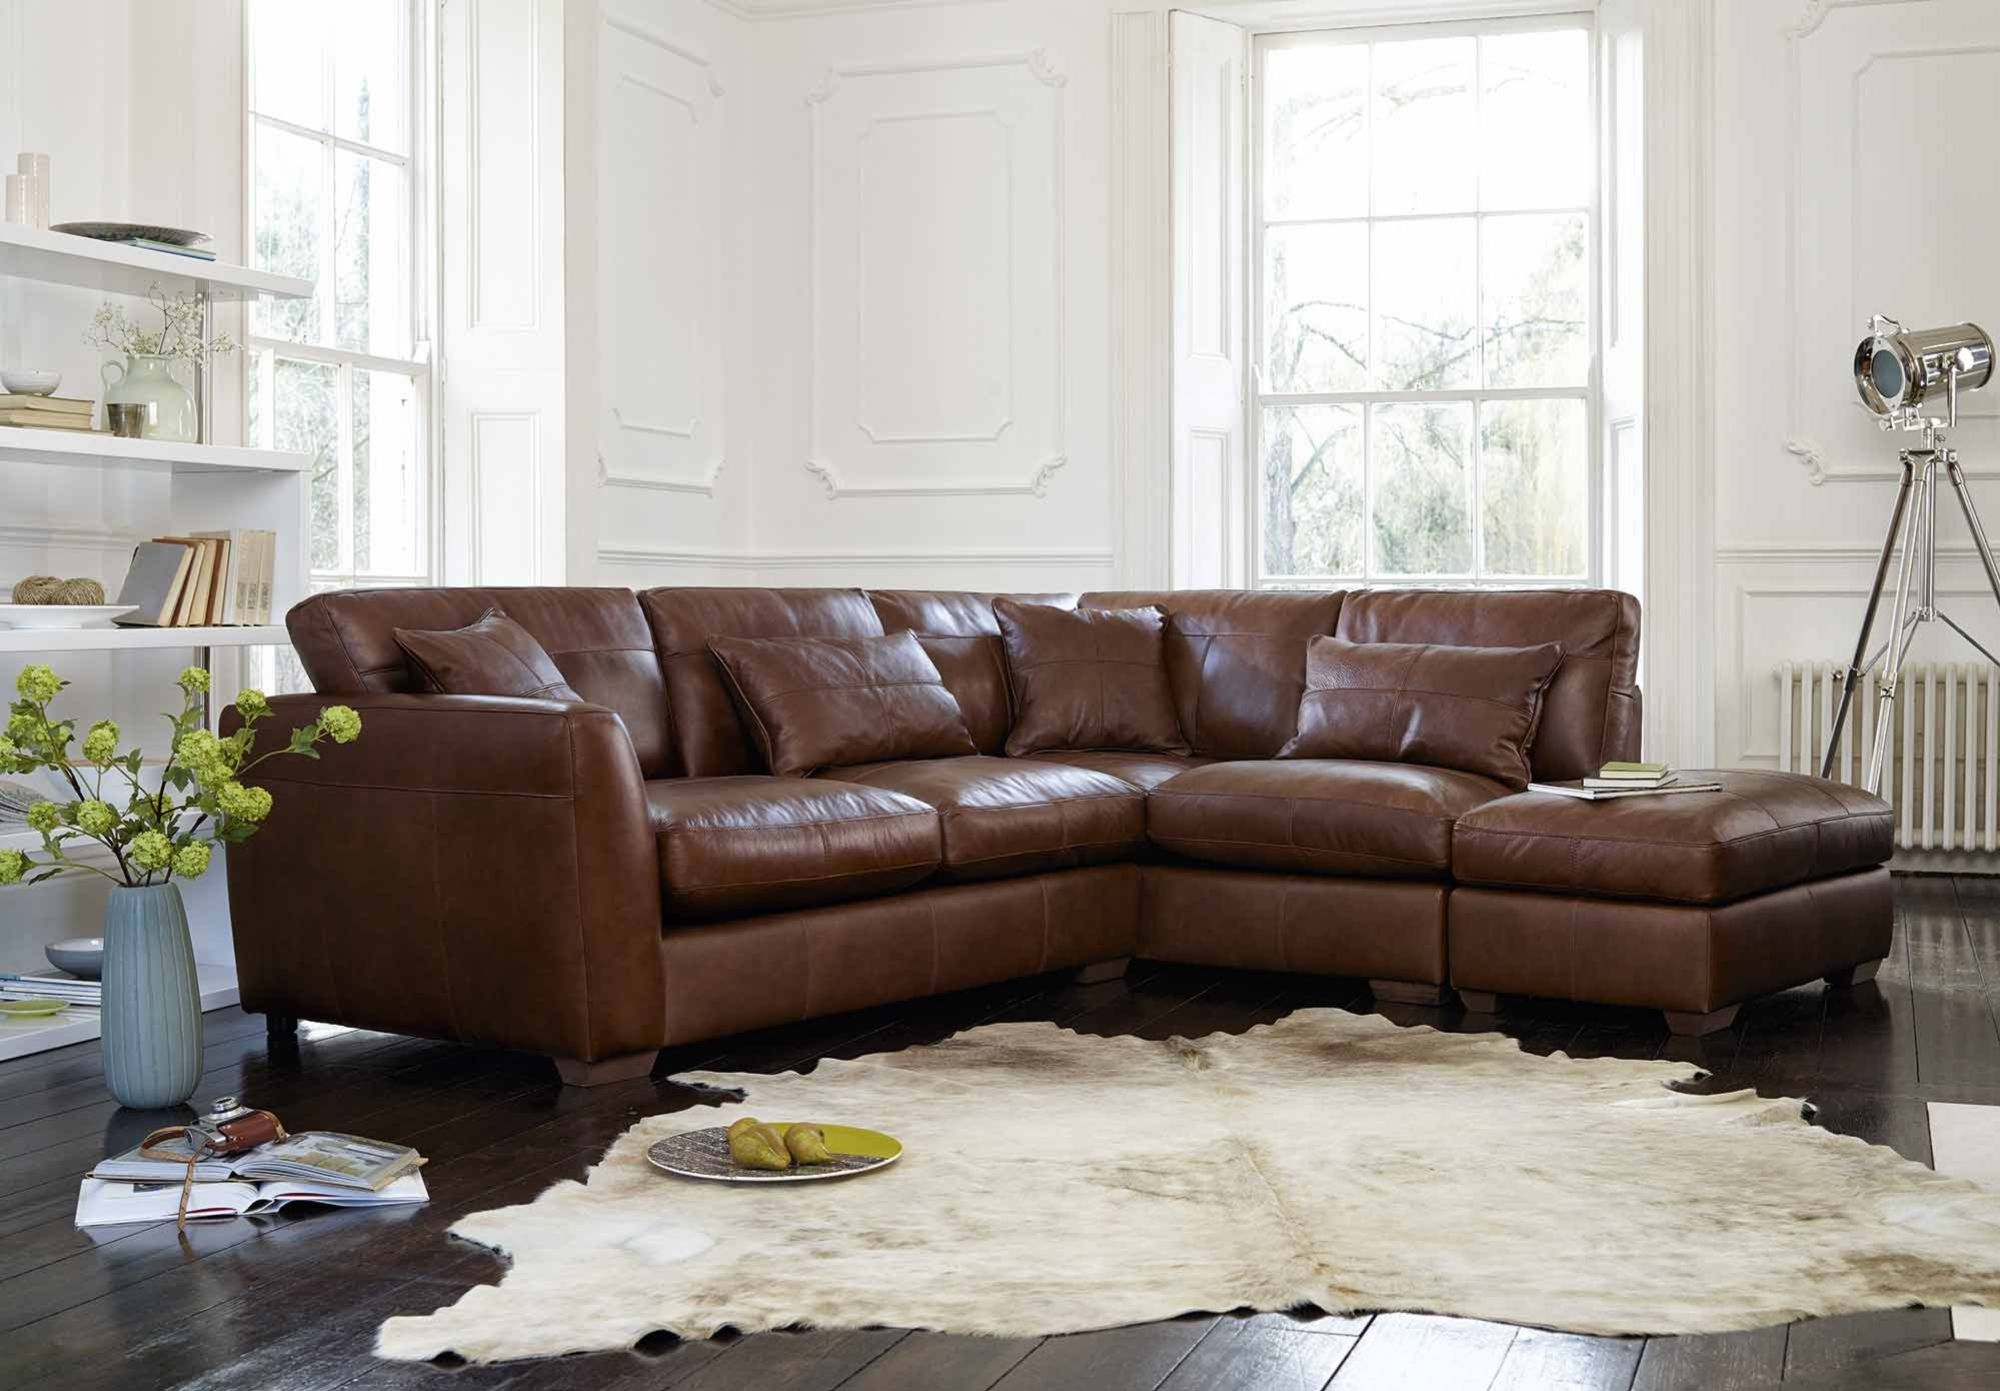 Moderne eckcouch leder  Sloane leather corner sofa - High Quality, Hand Crafted Leather ...